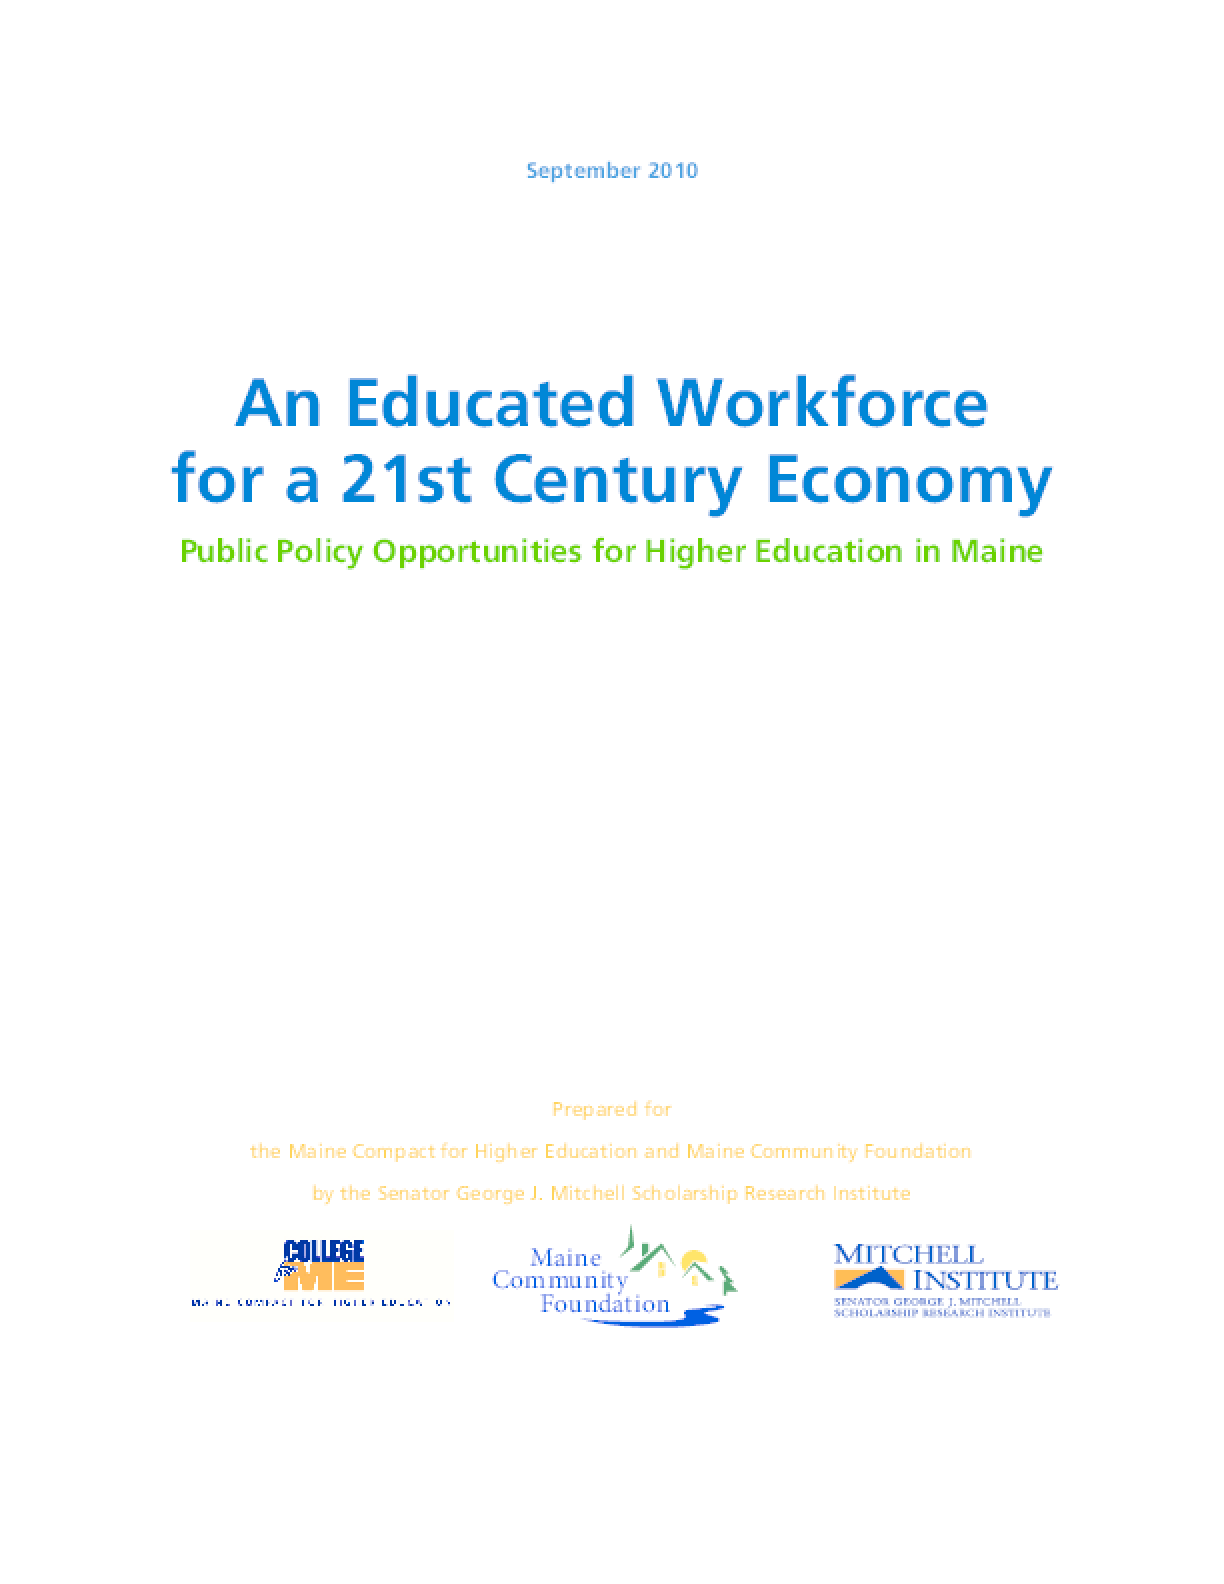 Educated Workforce for a 21st Century Economy: Public Policy Opportunities for Higher Education in Maine, An